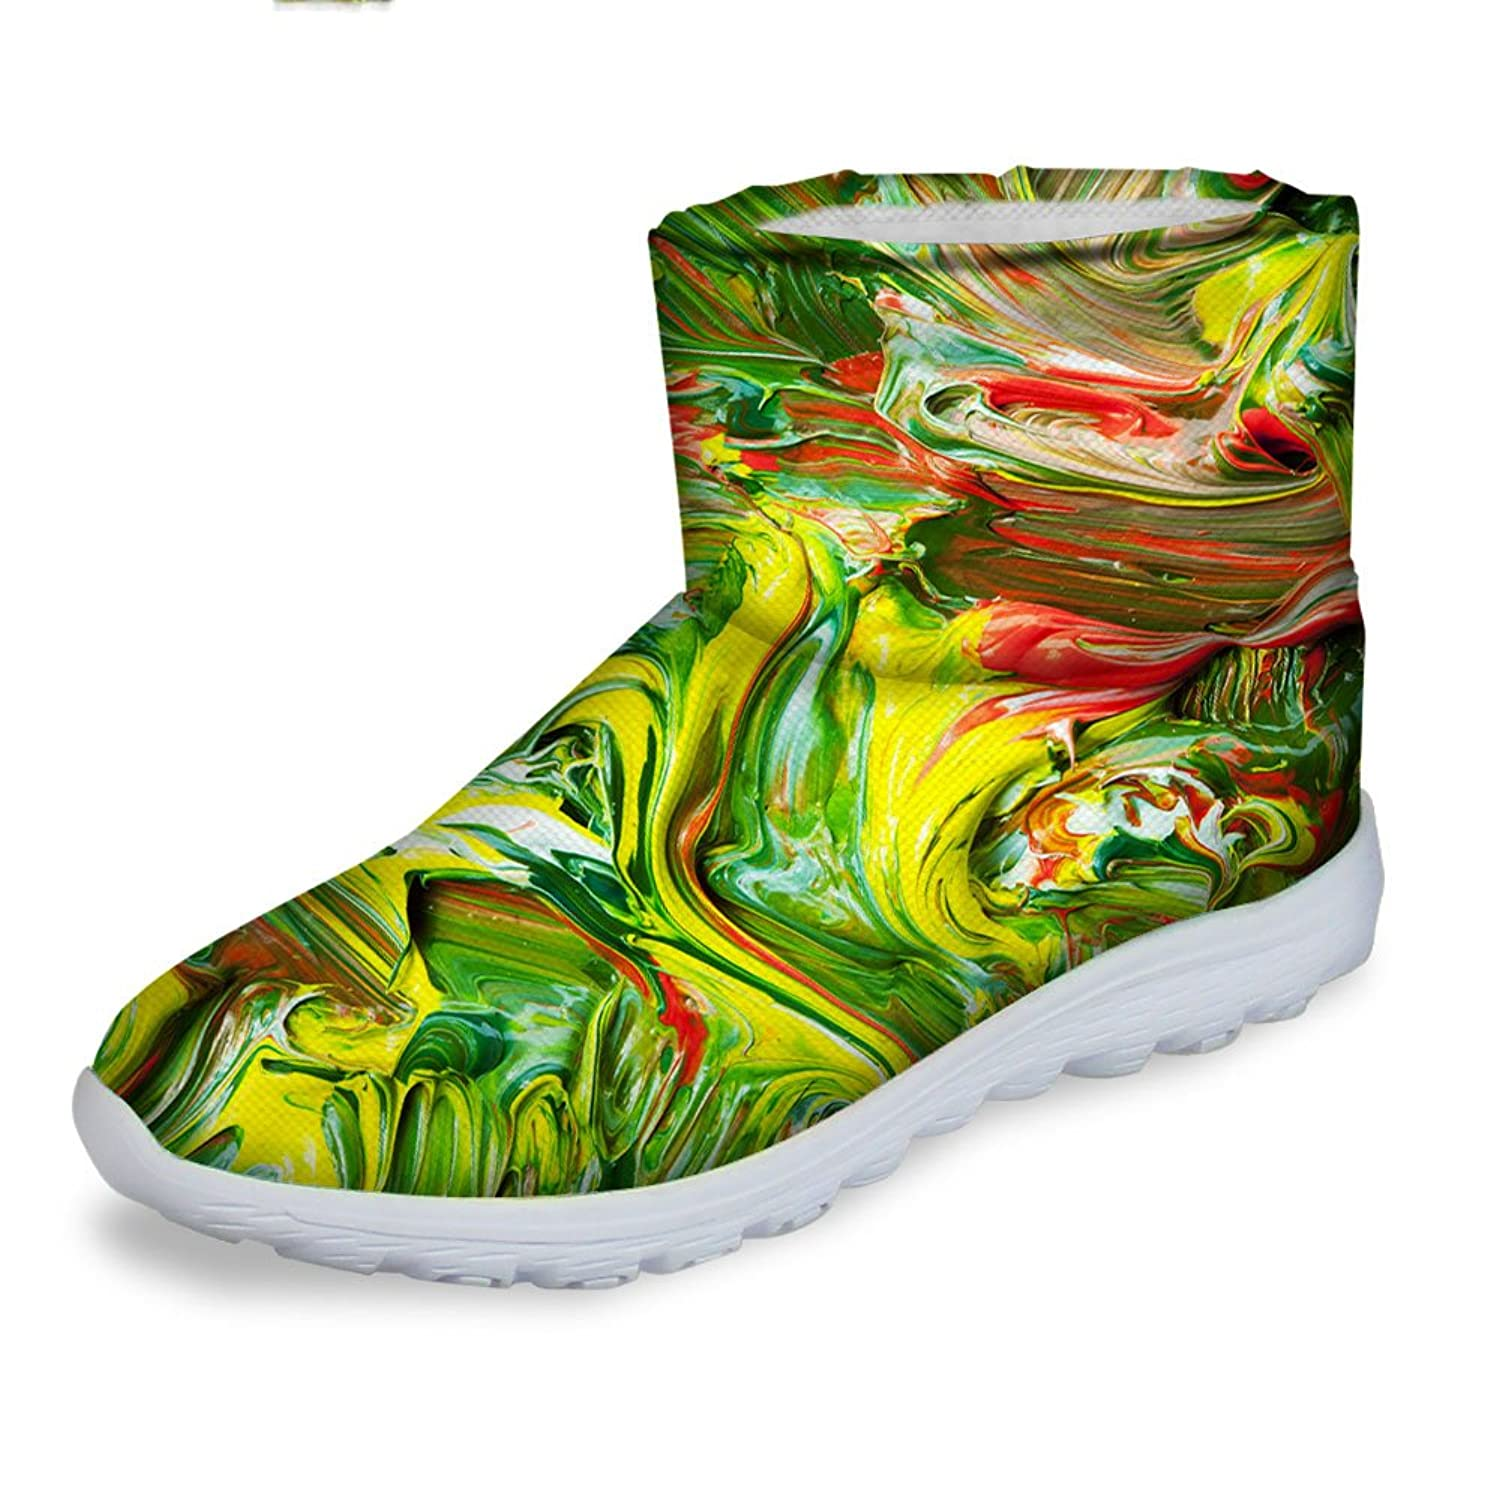 FOR U DESIGNS Green Women's Winter Warm Shoes Comfortable Snow Boots US 8.5 50%OFF